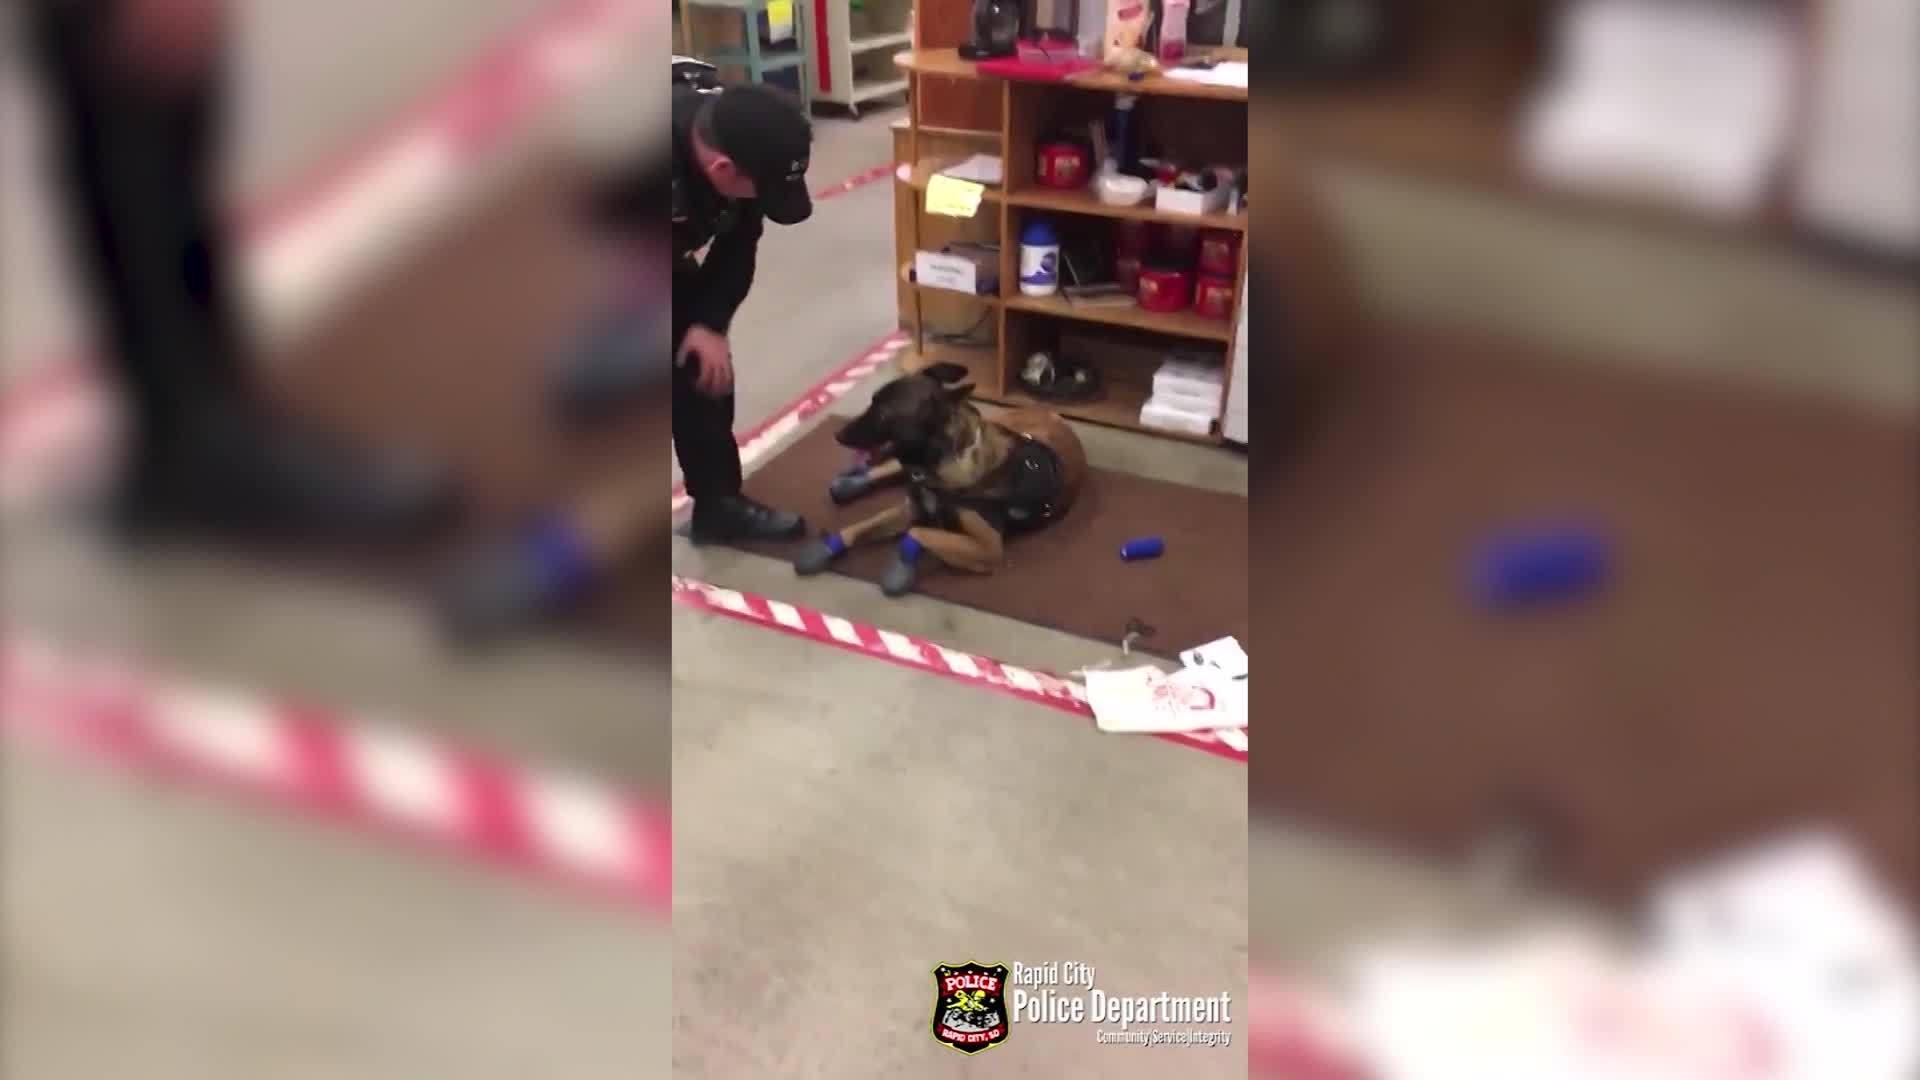 VIDEO: Police dog has trouble getting used to snow boots